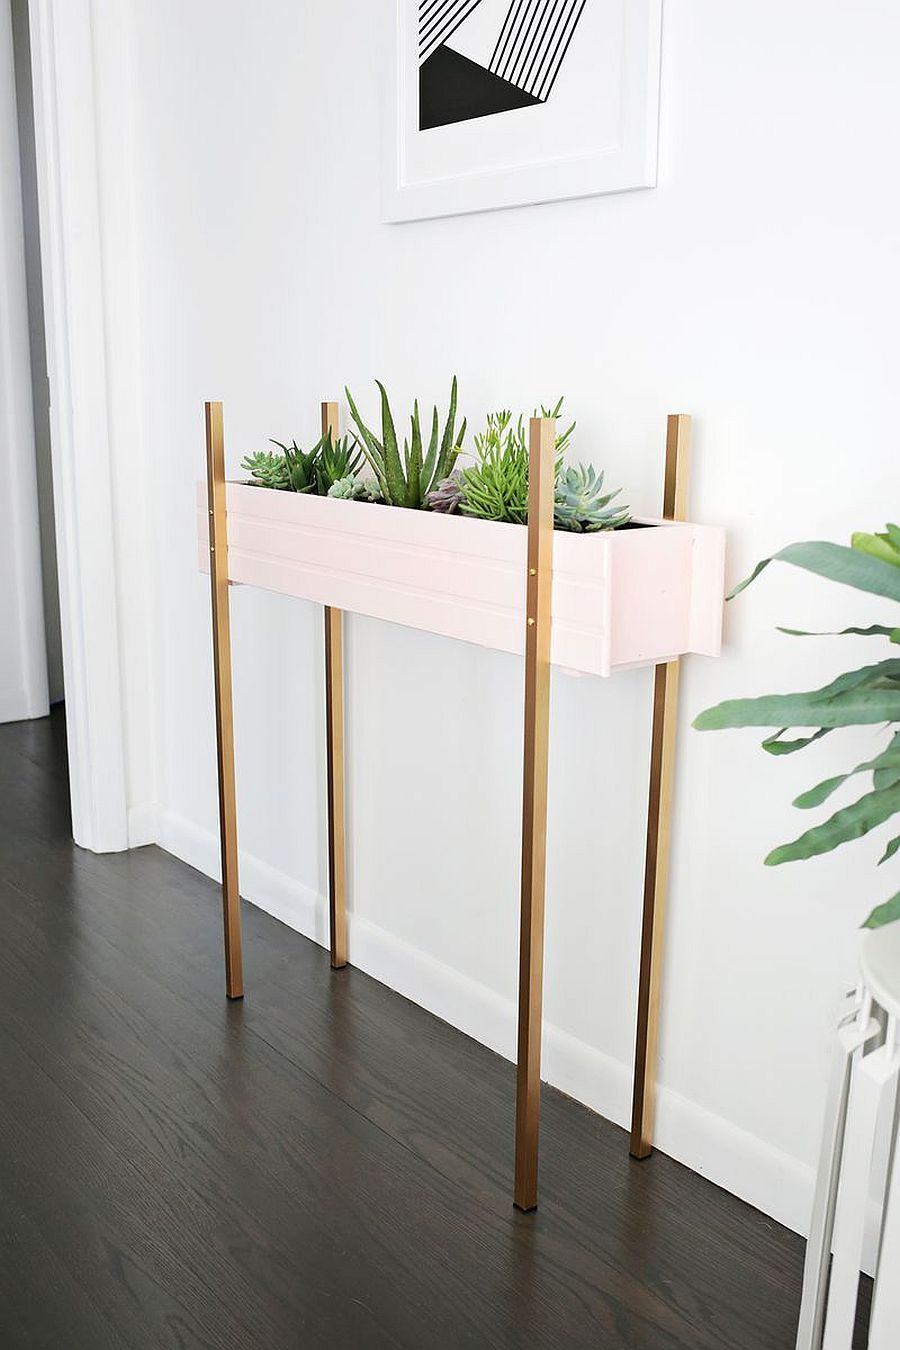 Diy Natural Wood Furniture Cleaner   11 Diy Plant Stands For Greener And  Cleaner Interiors Diy Ideas